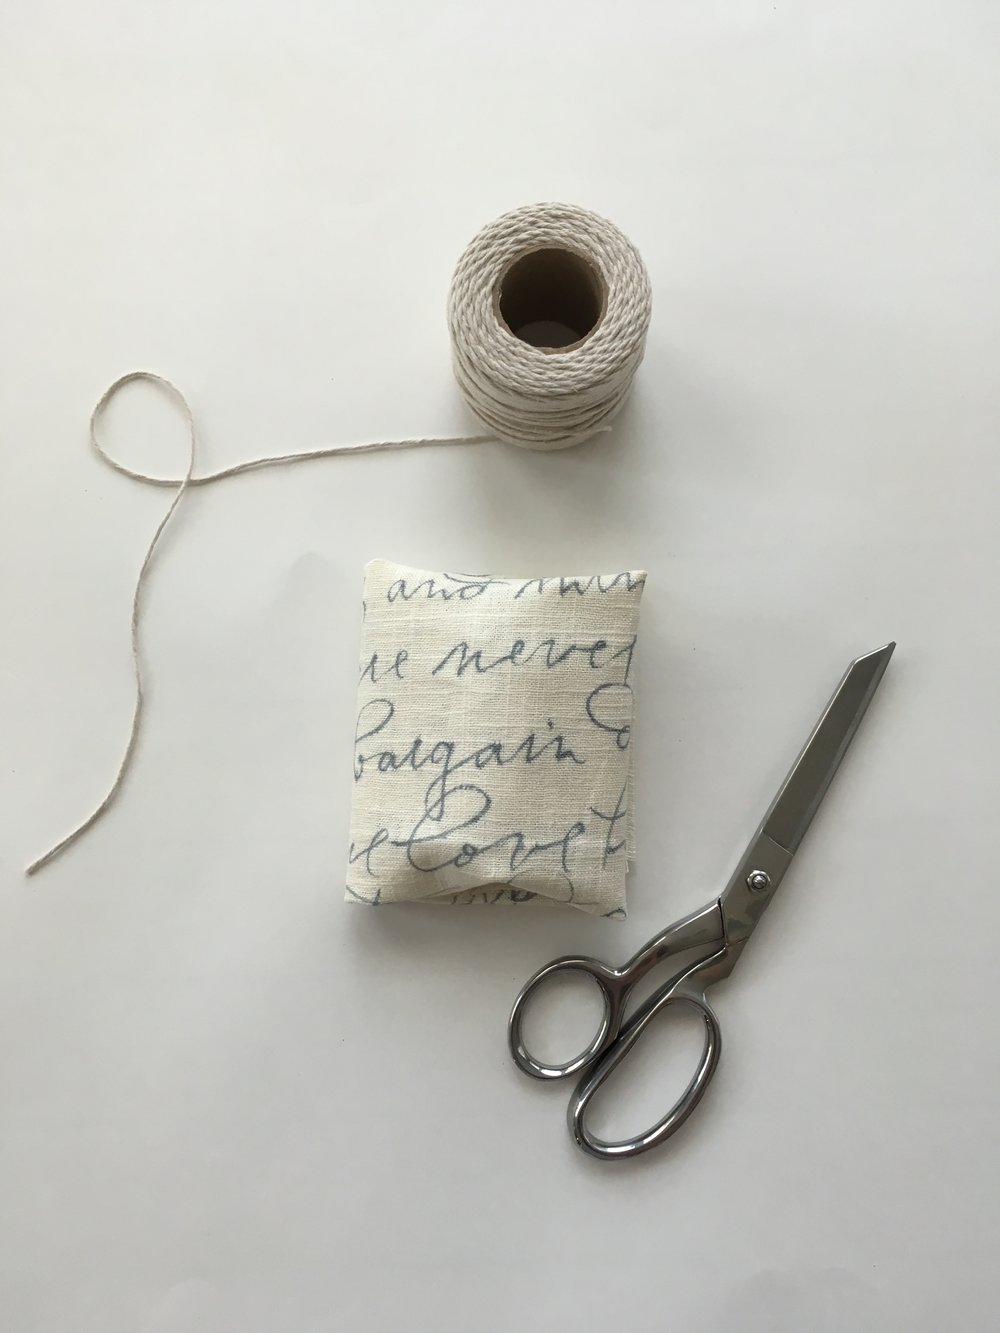 Step 6. - TIE. Tie up your sweet gift with ribbon or twine. Now you're ready to give! Fabric makes gifting small tokens or handmade gifts even more personal. Hostess gifts, housewarming, wedding or anniversary gifts are all great occasions for wrapping with fabric.